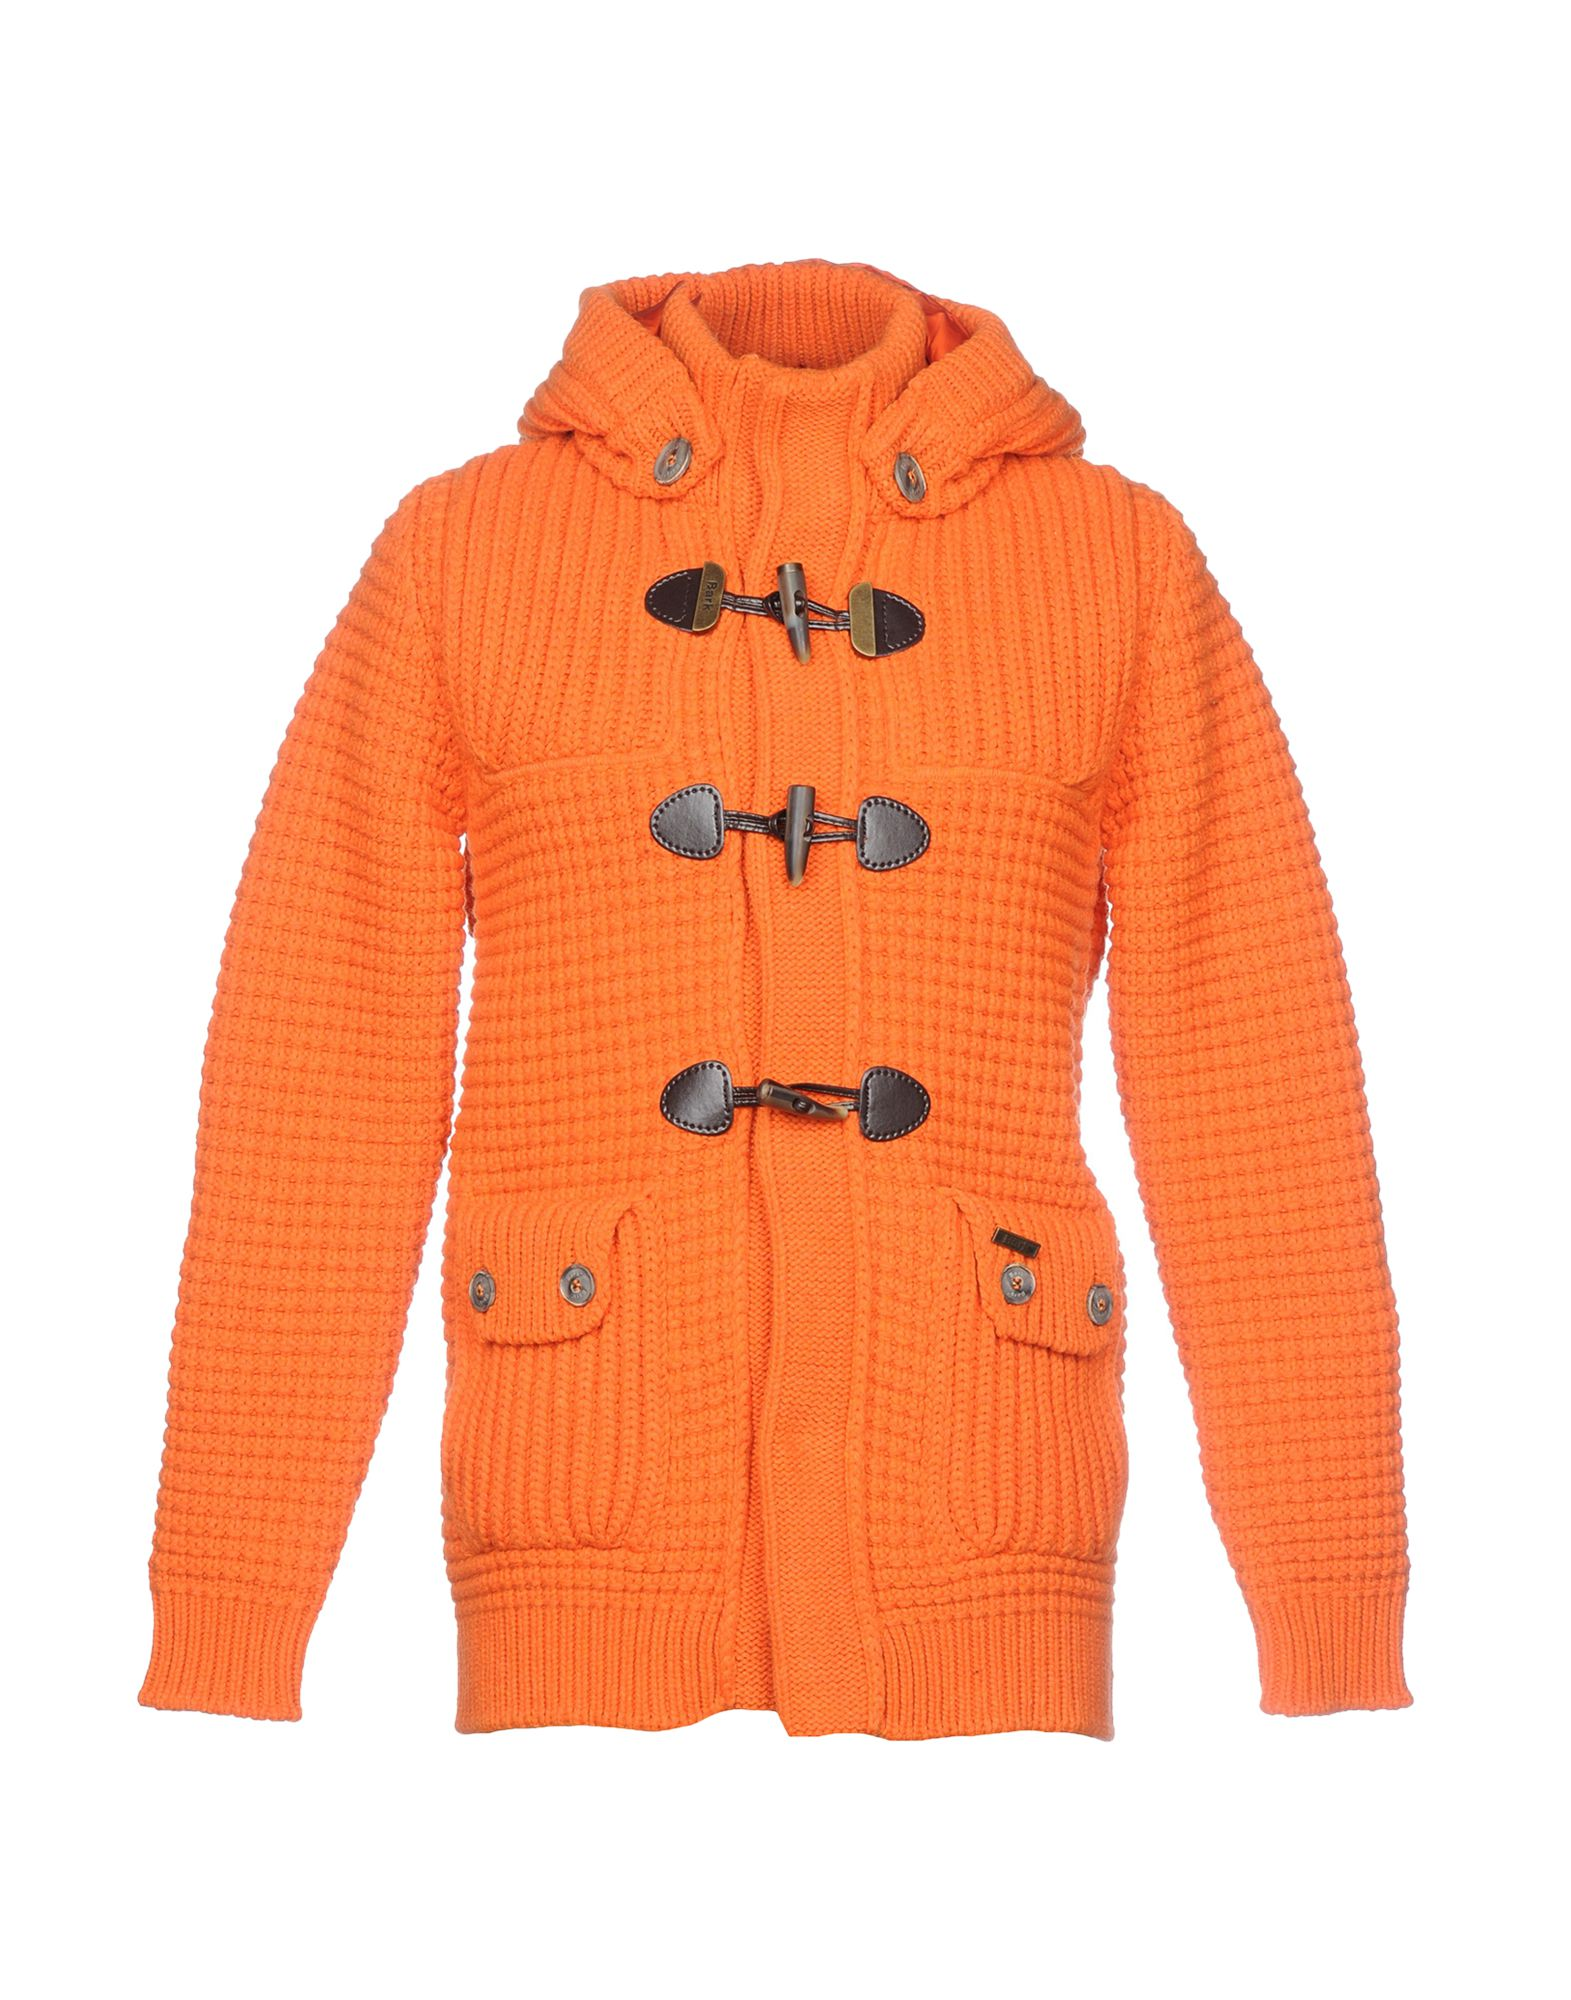 BARK Jacket in Orange